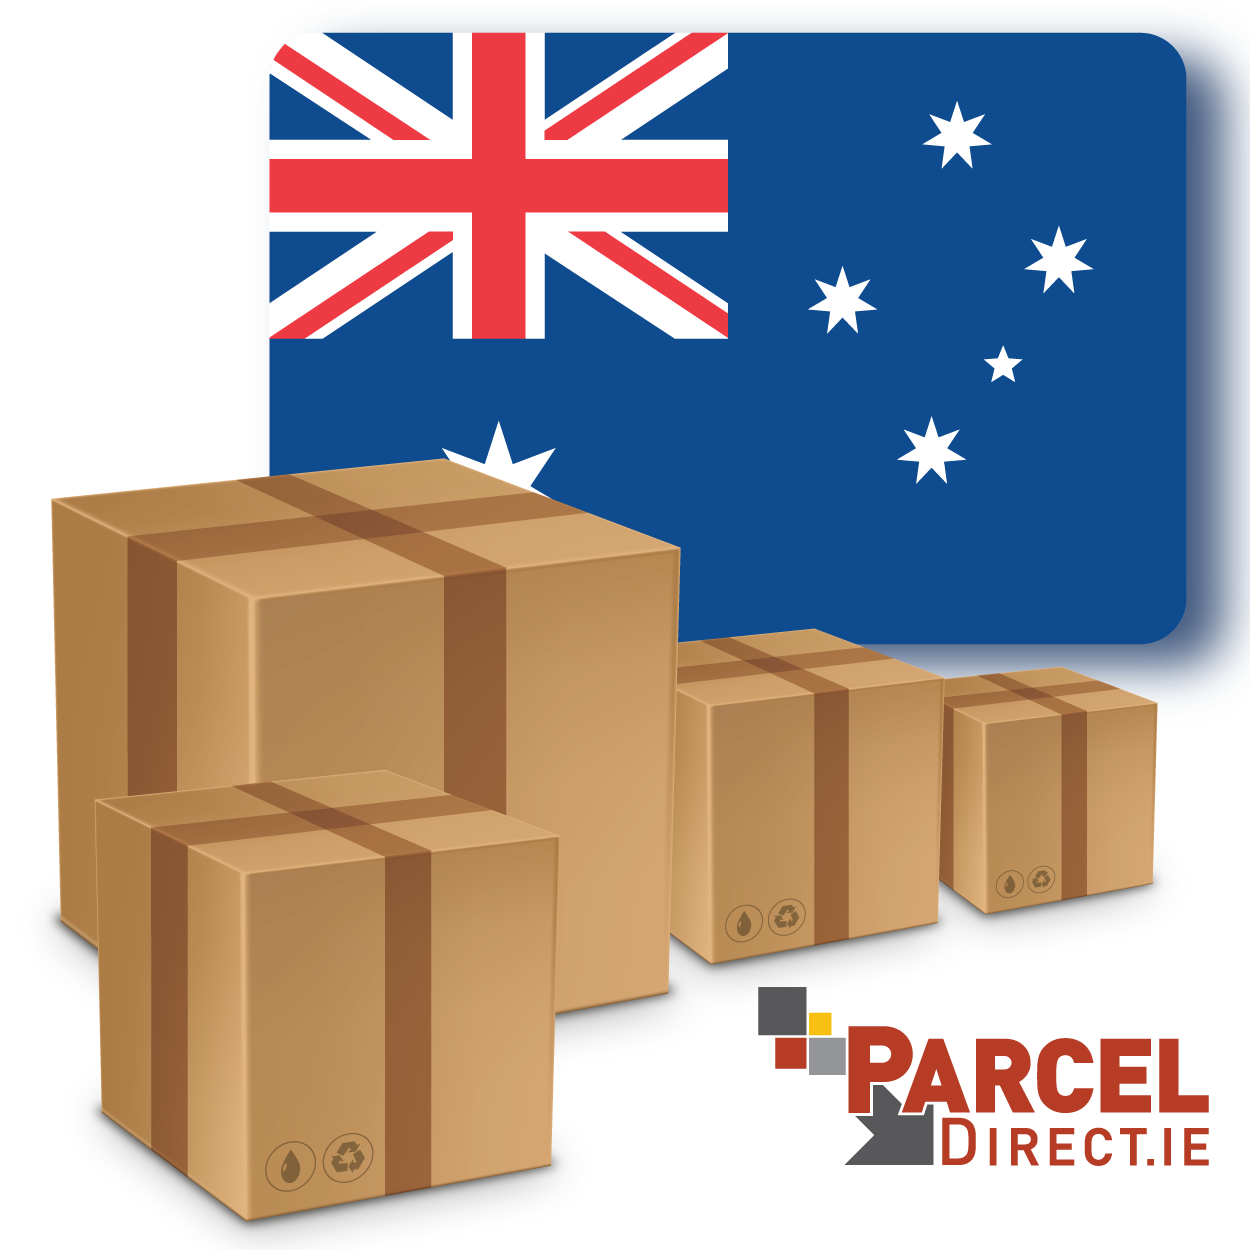 Parcel Delivery To Australia Send A Parcel To Australia Courier Service To Australia Parcel Shipping Postage